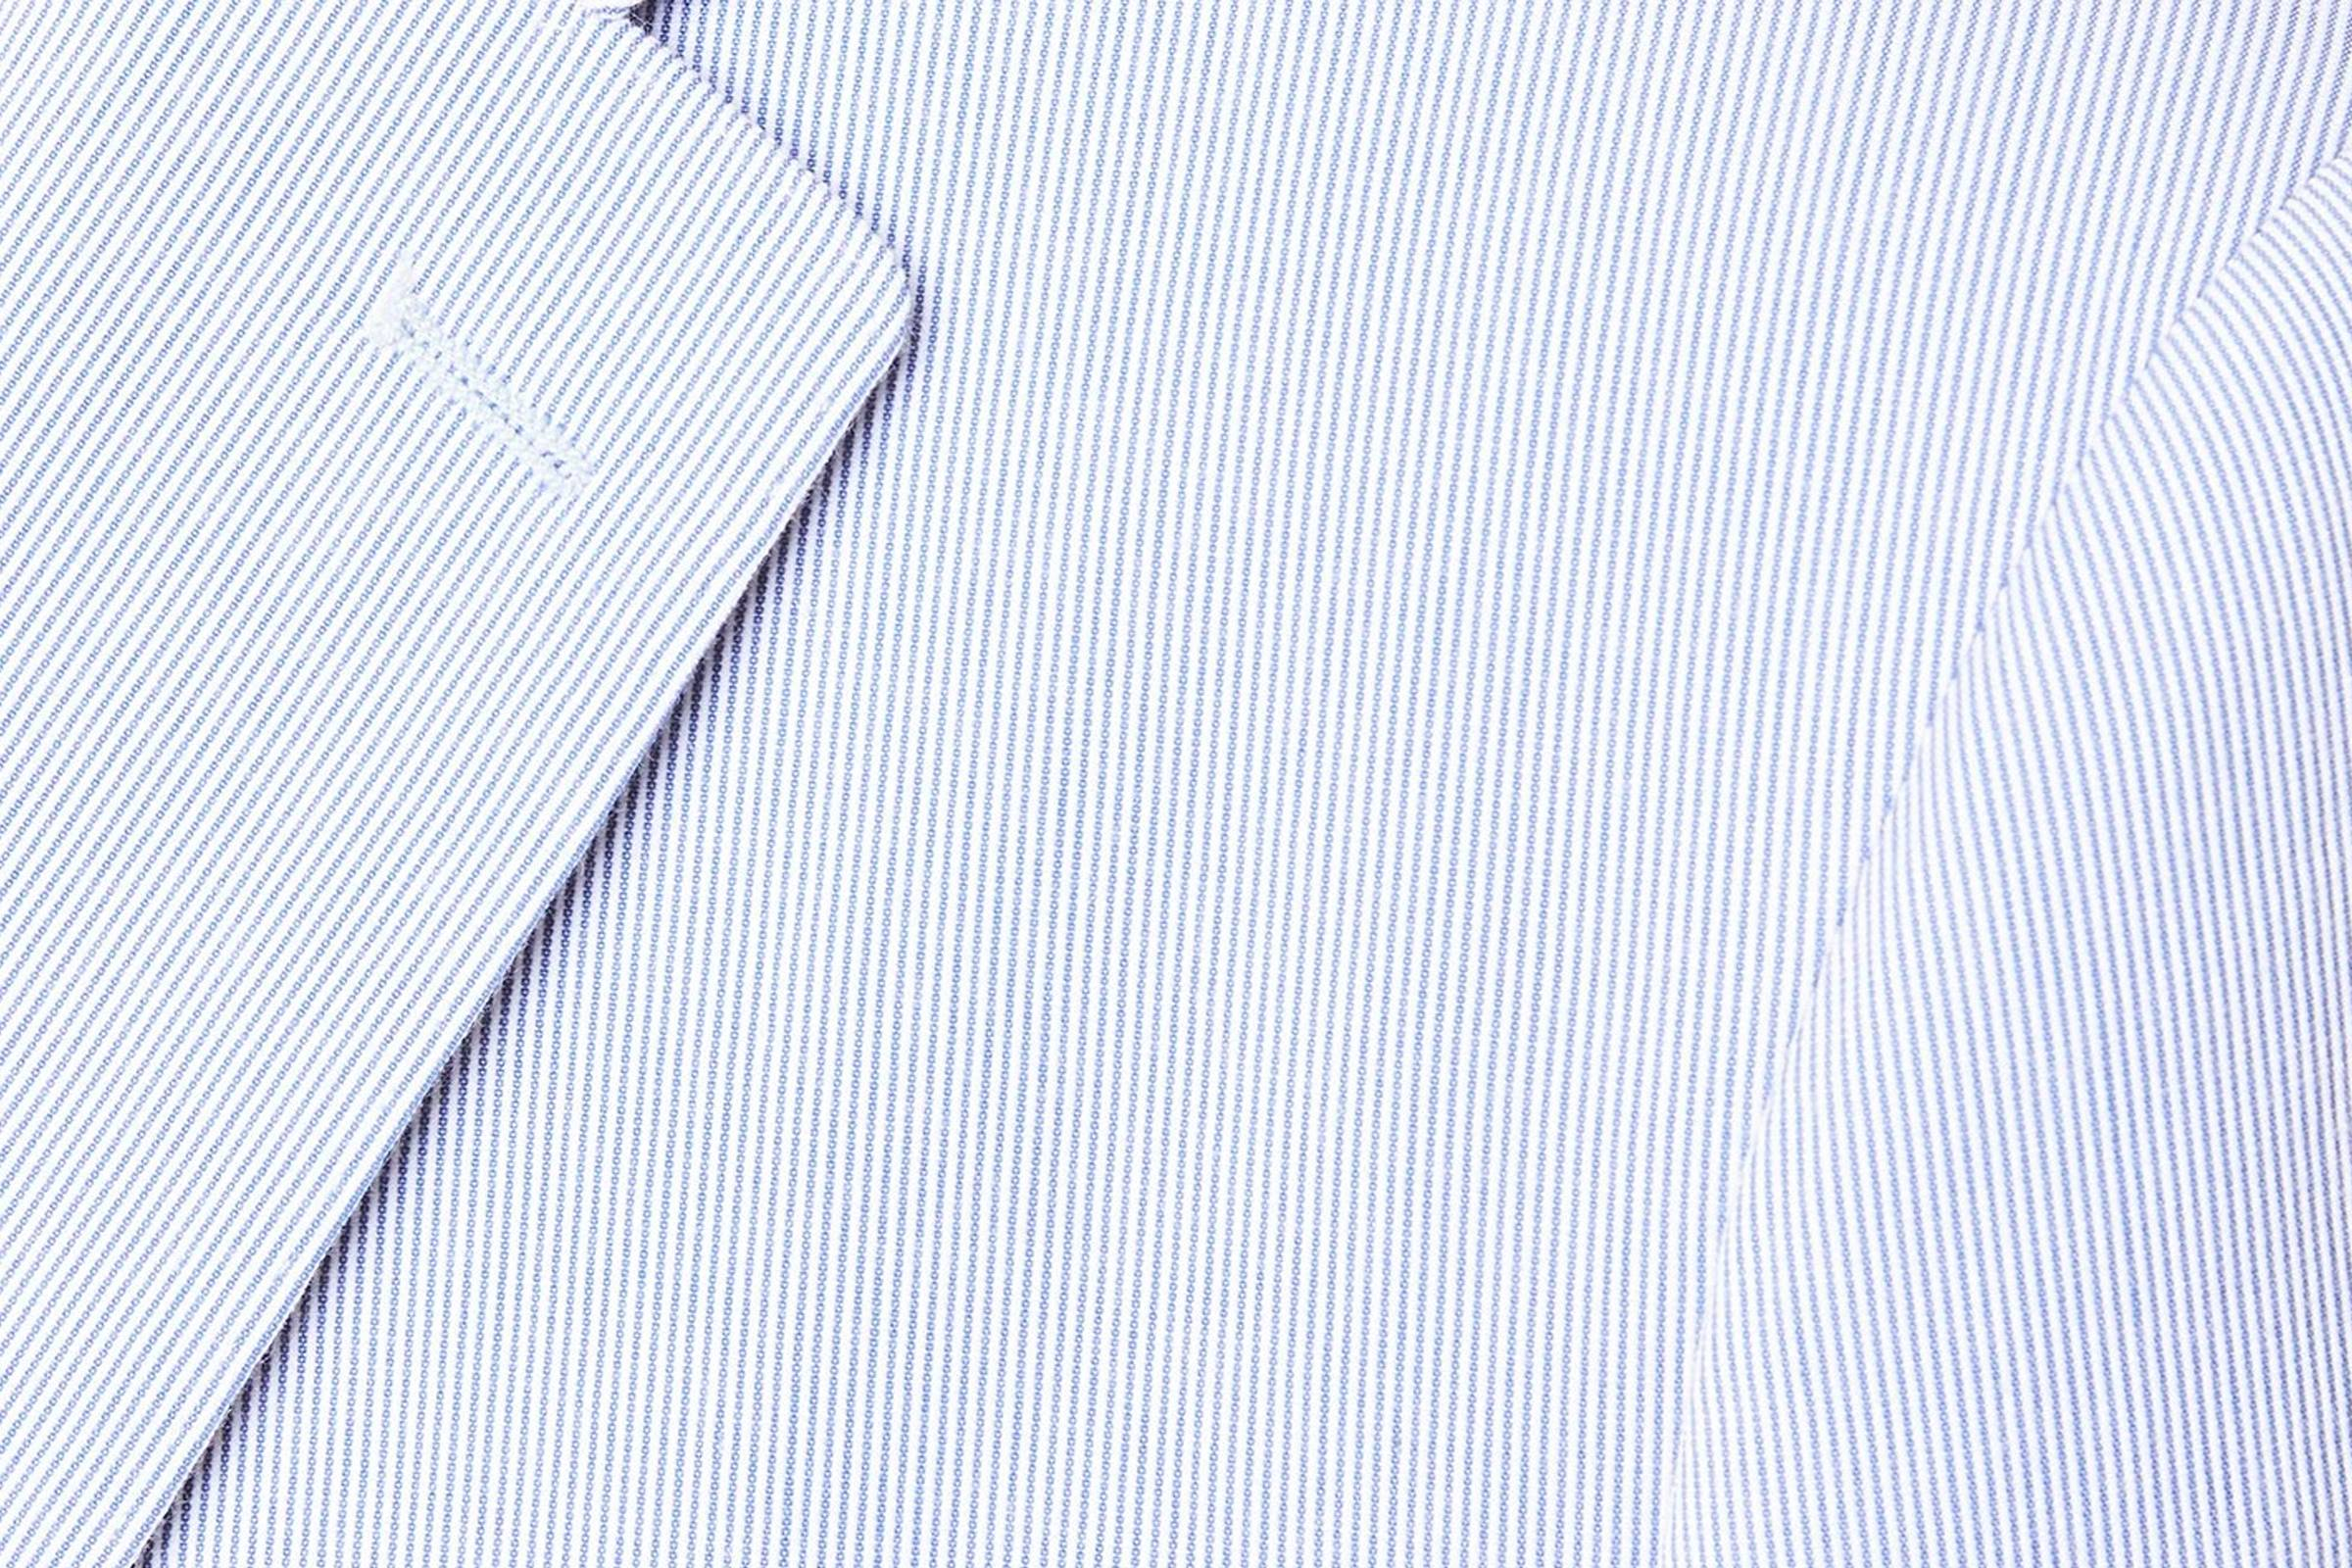 What Suits Are Made From: Cotton